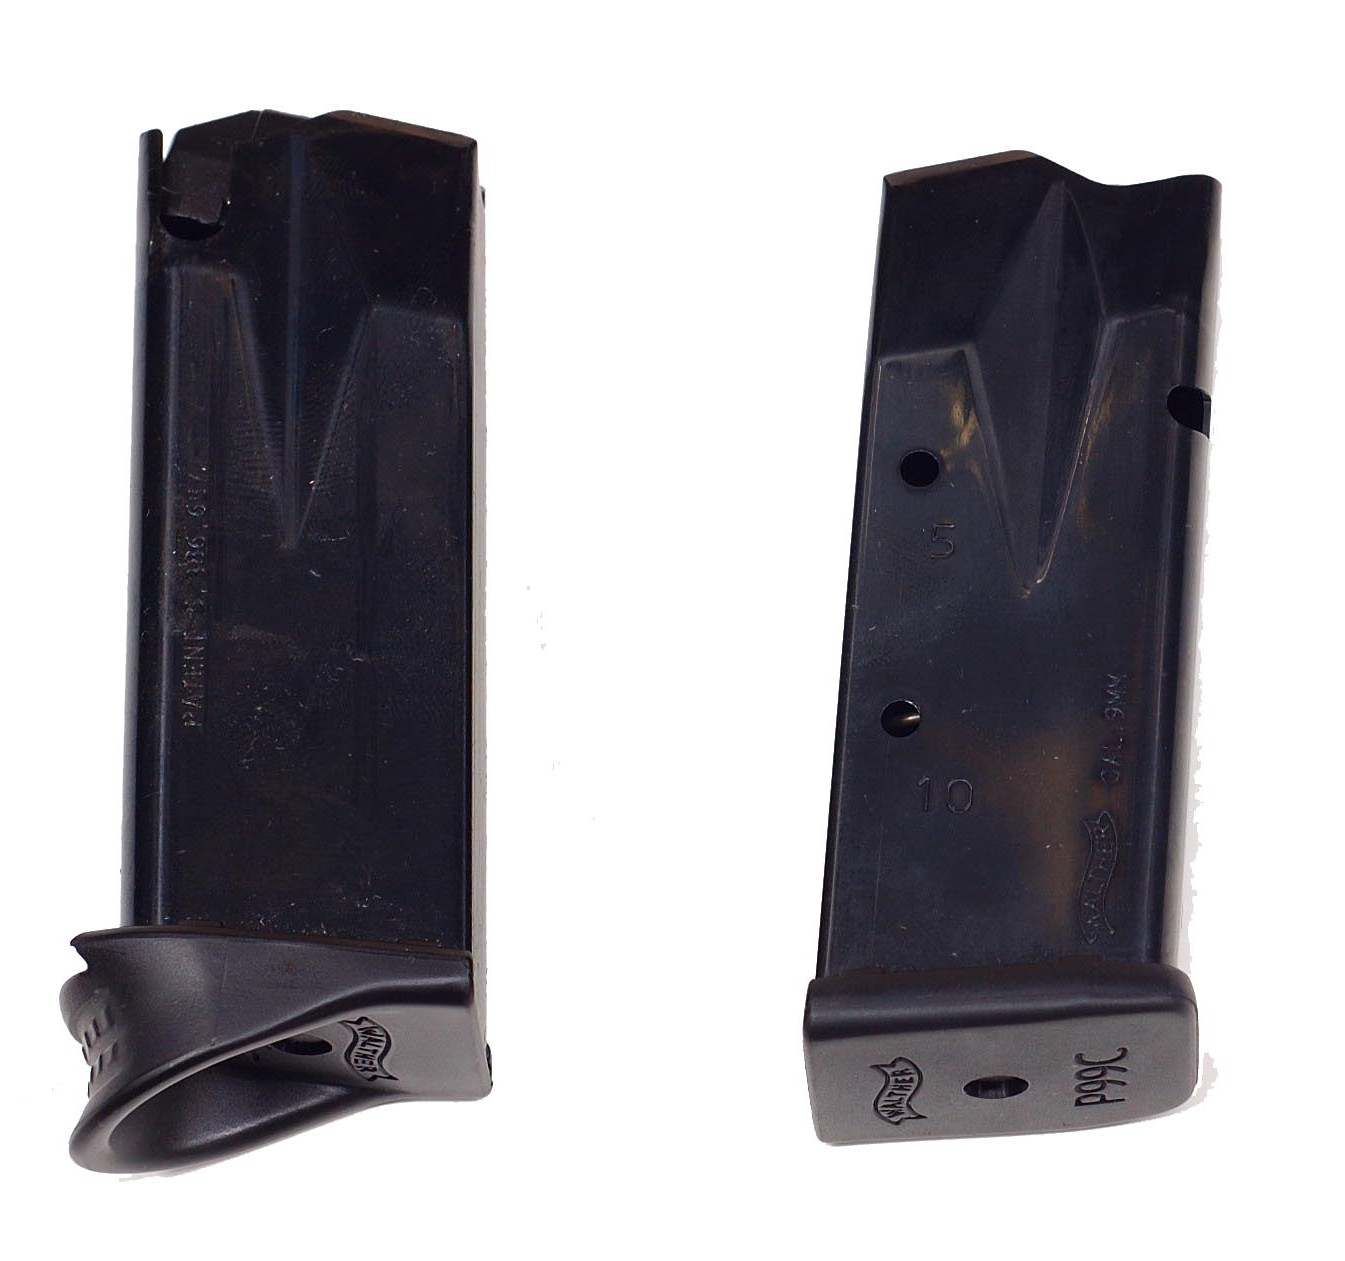 Walther p99c extended magazine